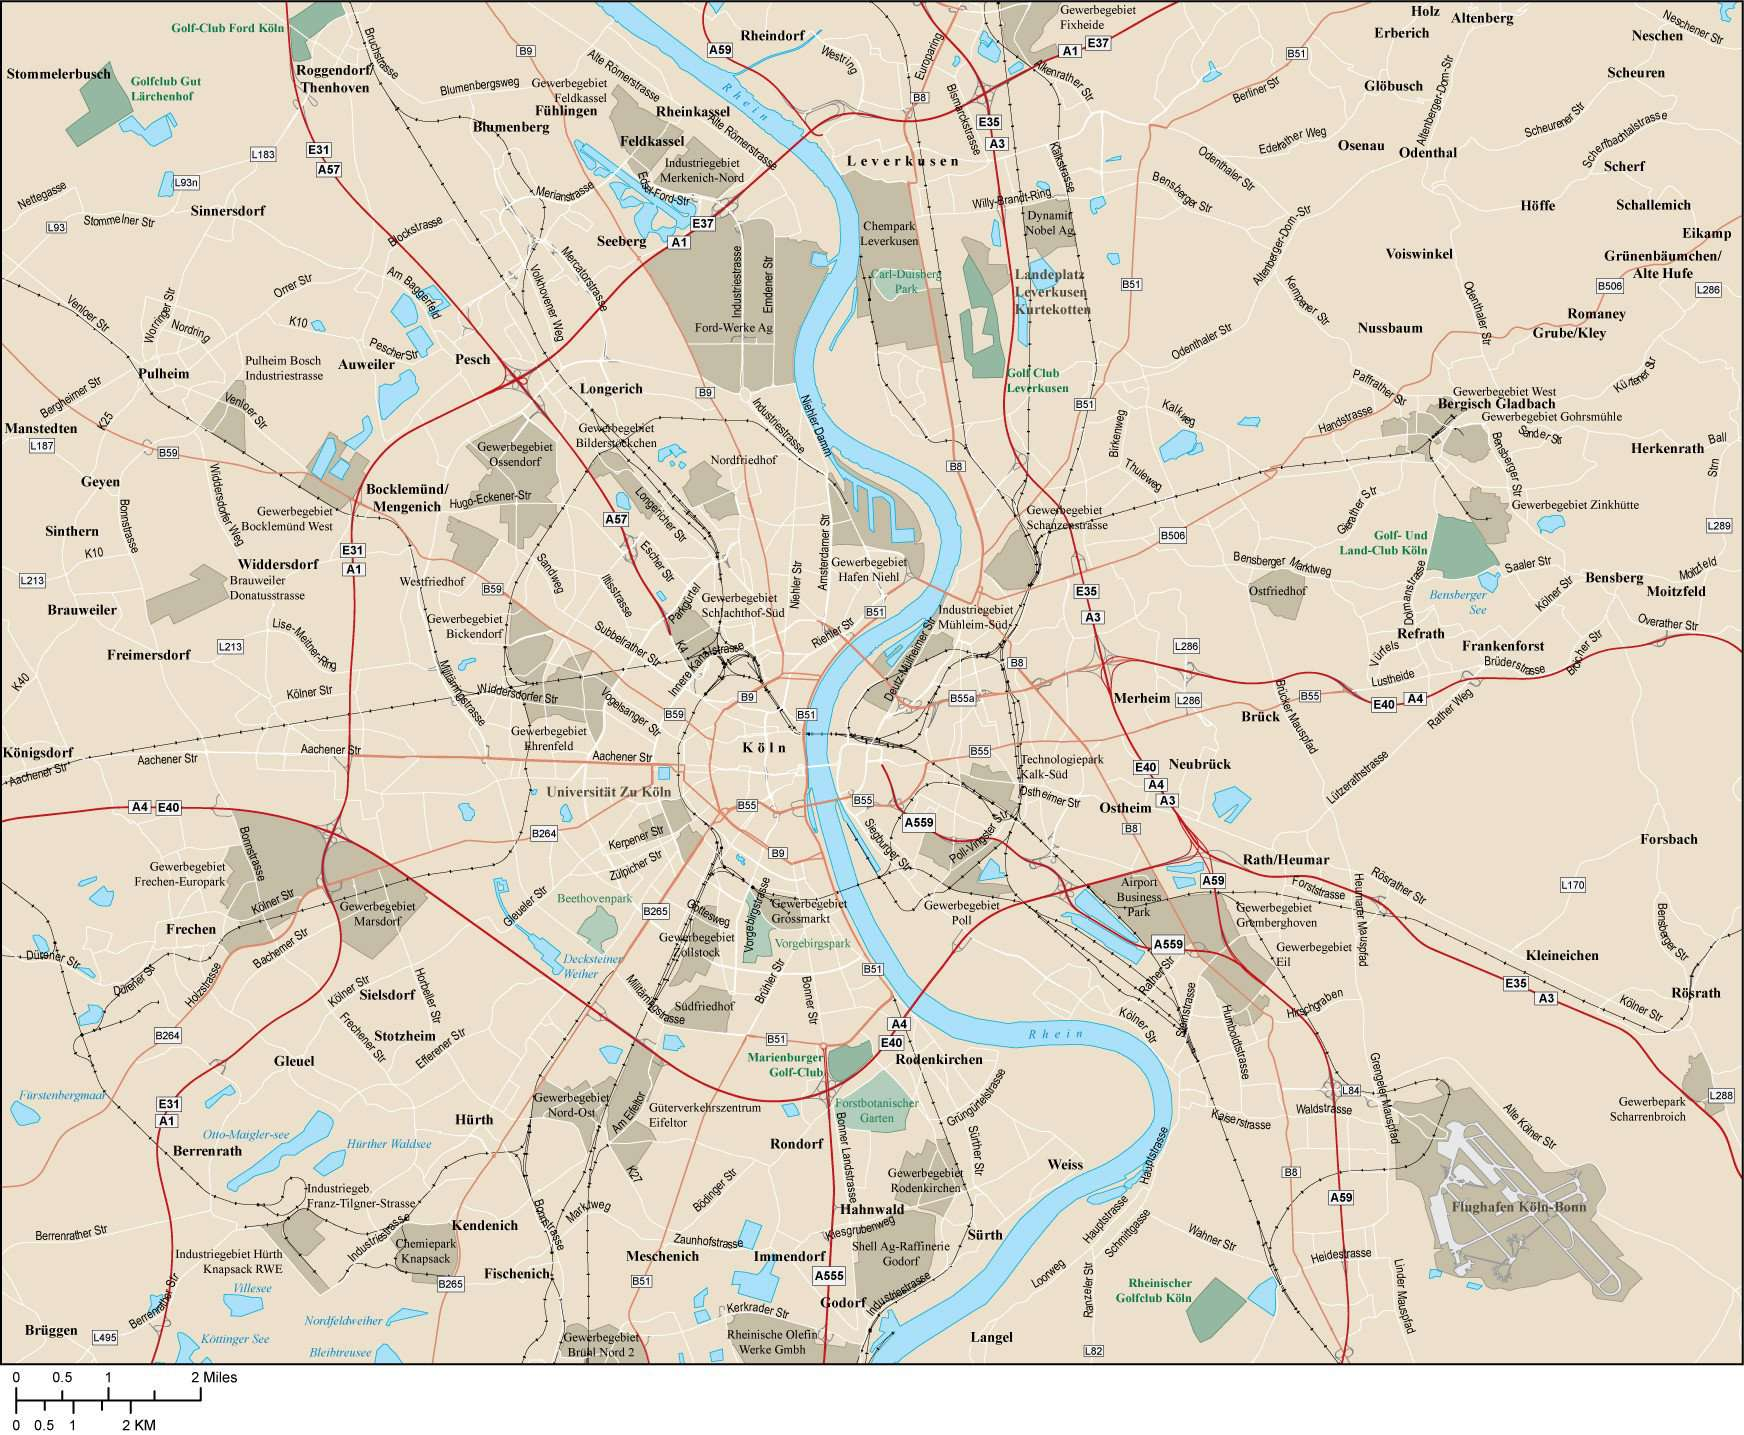 Cologne On Map Of Germany.Cologne Germany Map 560 Square Miles With Arterial And Major Roads